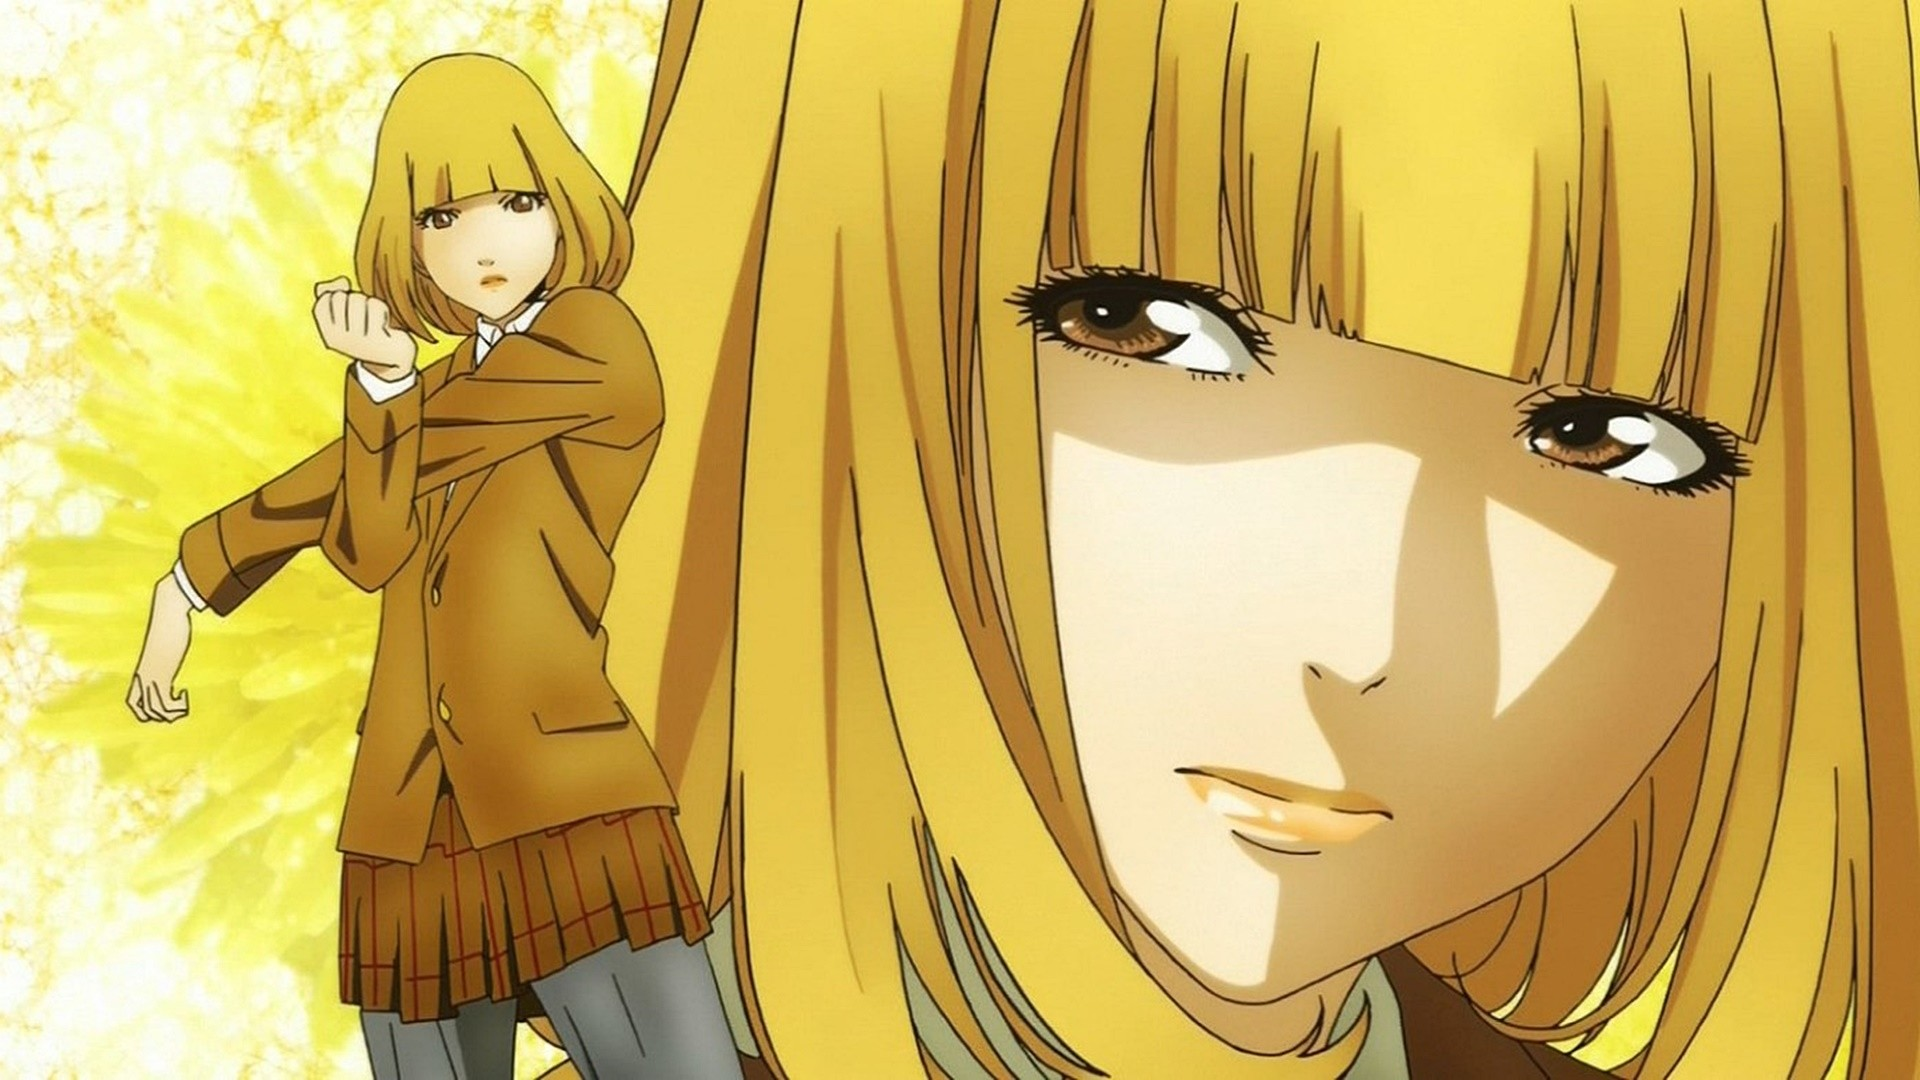 Prison School Source: Keys: anime, prison school, television, wallpaper,  wallpapers. Submitted Anonymously 2 years ago